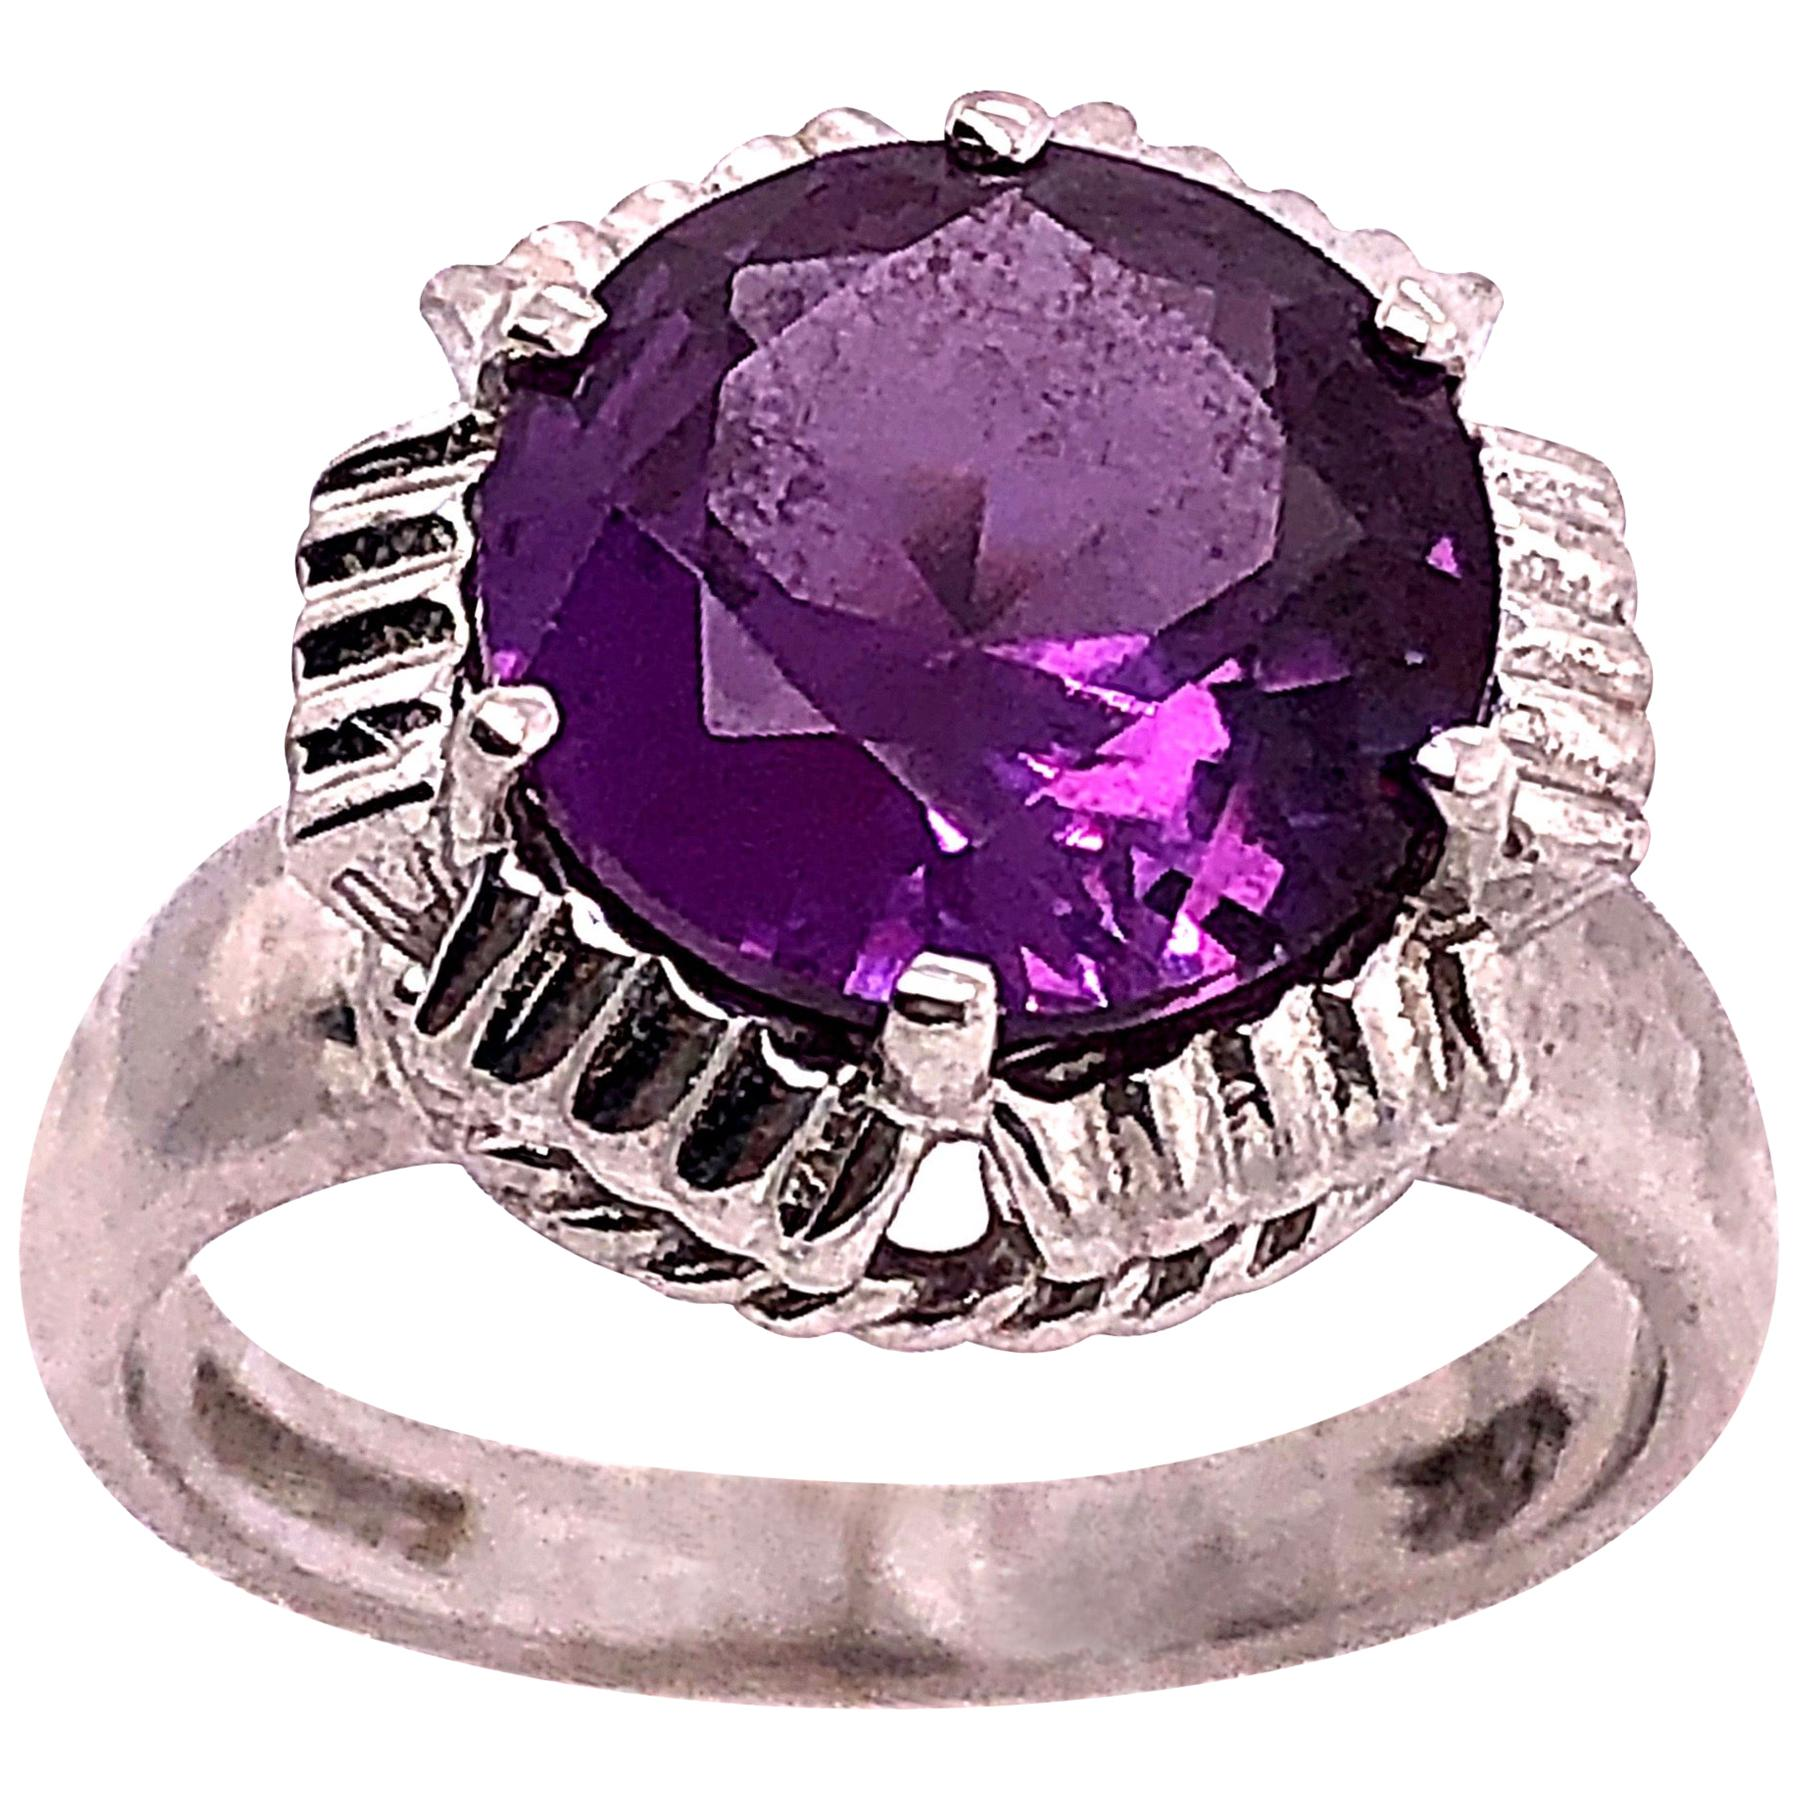 14 Karat White Gold with Round Amethyst Solitaire Ring